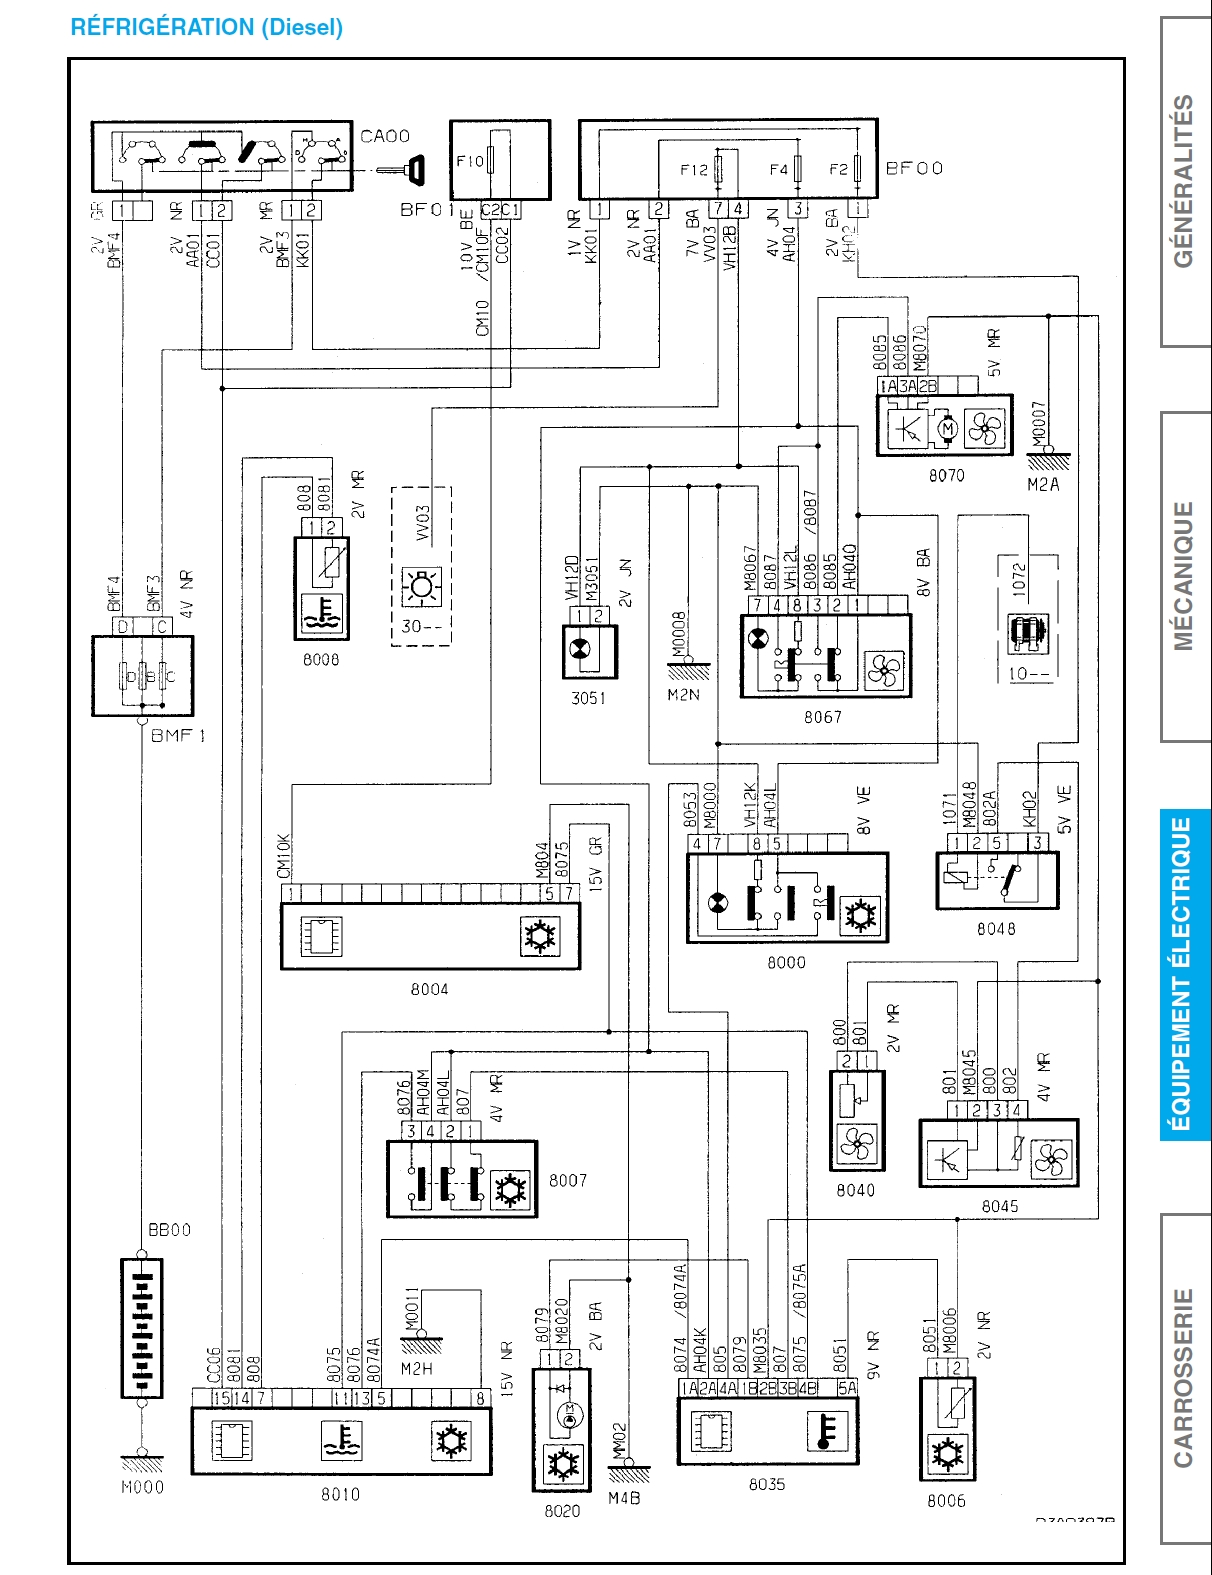 Air Conditioning problem Electric problem Saxo 1.5D '96 ... on ac air conditioning diagram, circuit breaker diagram, ac refrigerant cycle diagram, ac wiring circuit, ac heating element diagram, ac motors diagram, ac assembly diagram, ac wiring code, ac receptacles diagram, ac light wiring, ac wiring color, ac heater diagram, ac solenoid diagram, ac ductwork diagram, ac manifold diagram, ac electrical circuit diagrams, ac regulator diagram, ac schematic diagram, ac system wiring, ac installation diagram,